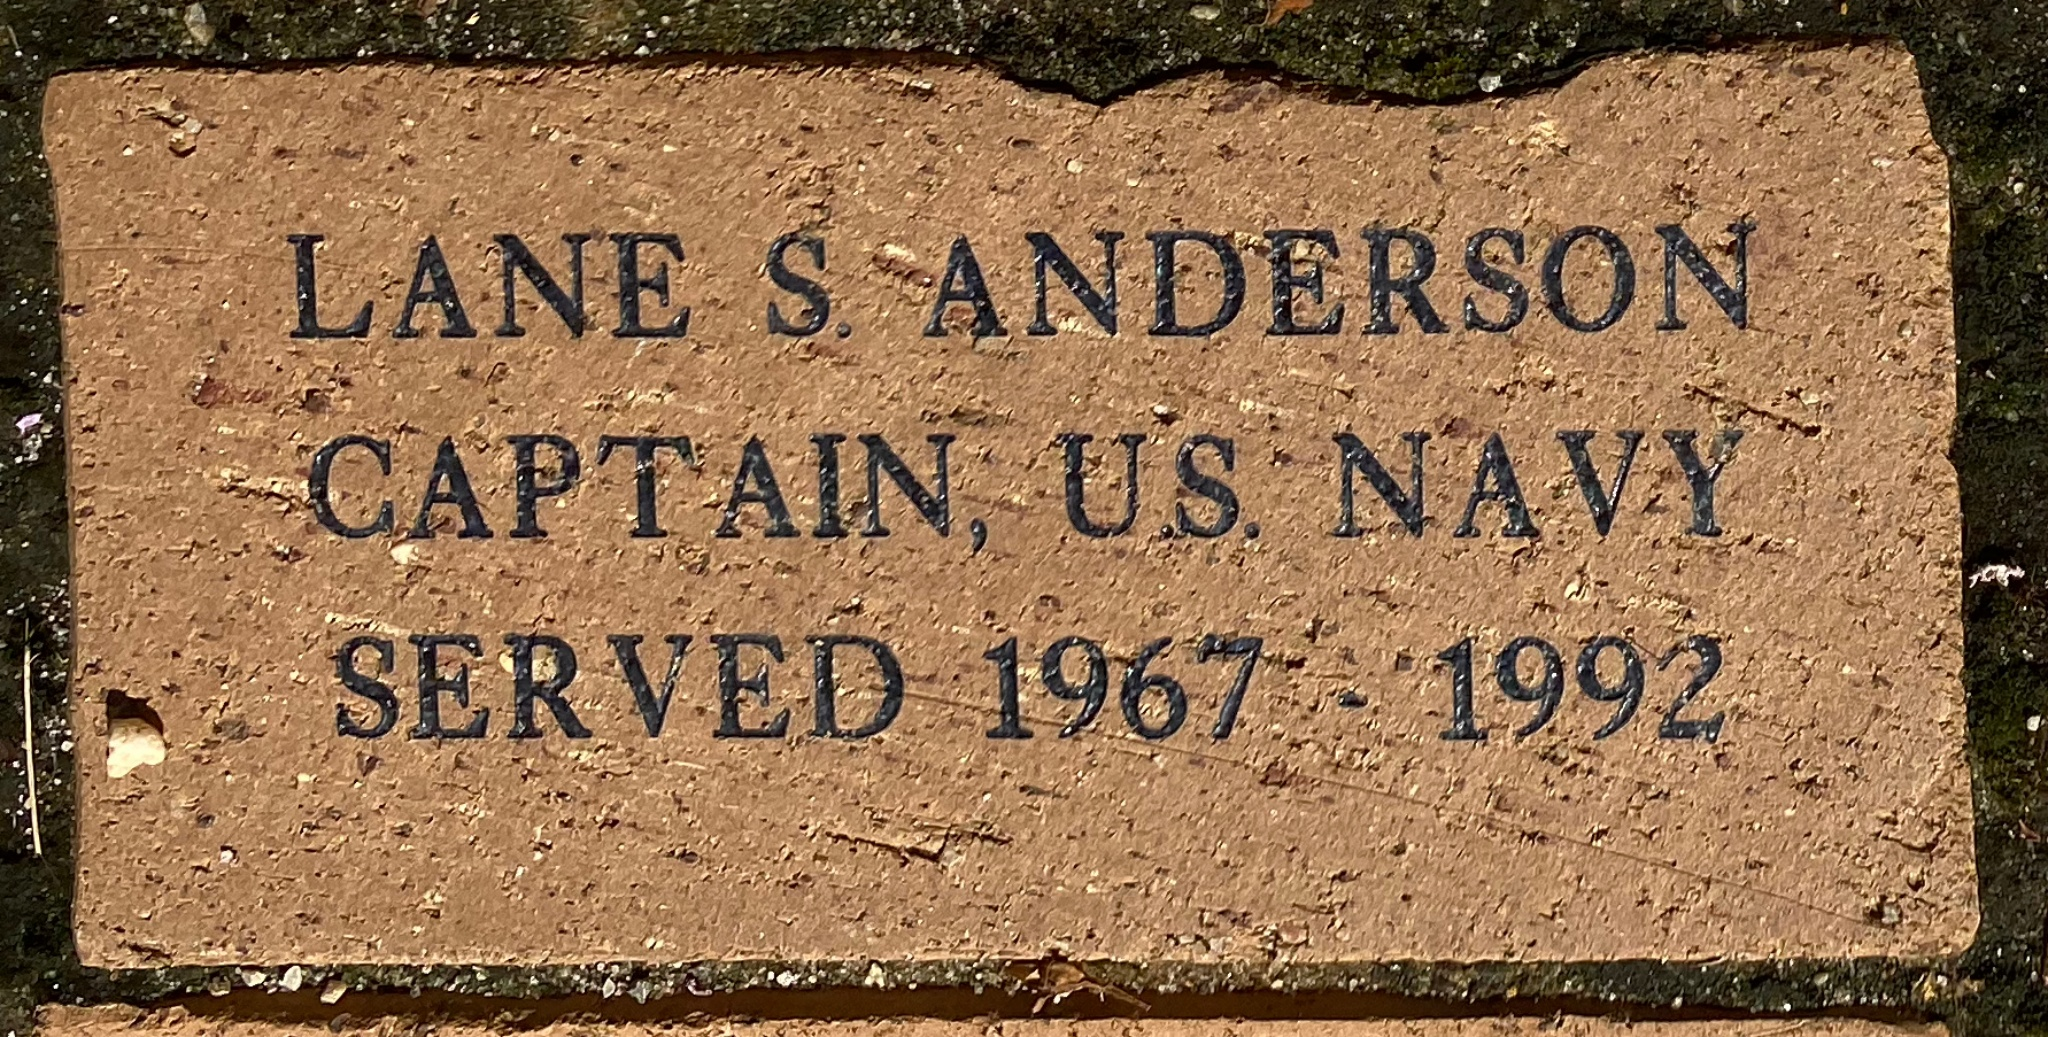 LANE S. ANDERSON CAPTAIN, U.S. NAVY SERVED 1967 – 1992